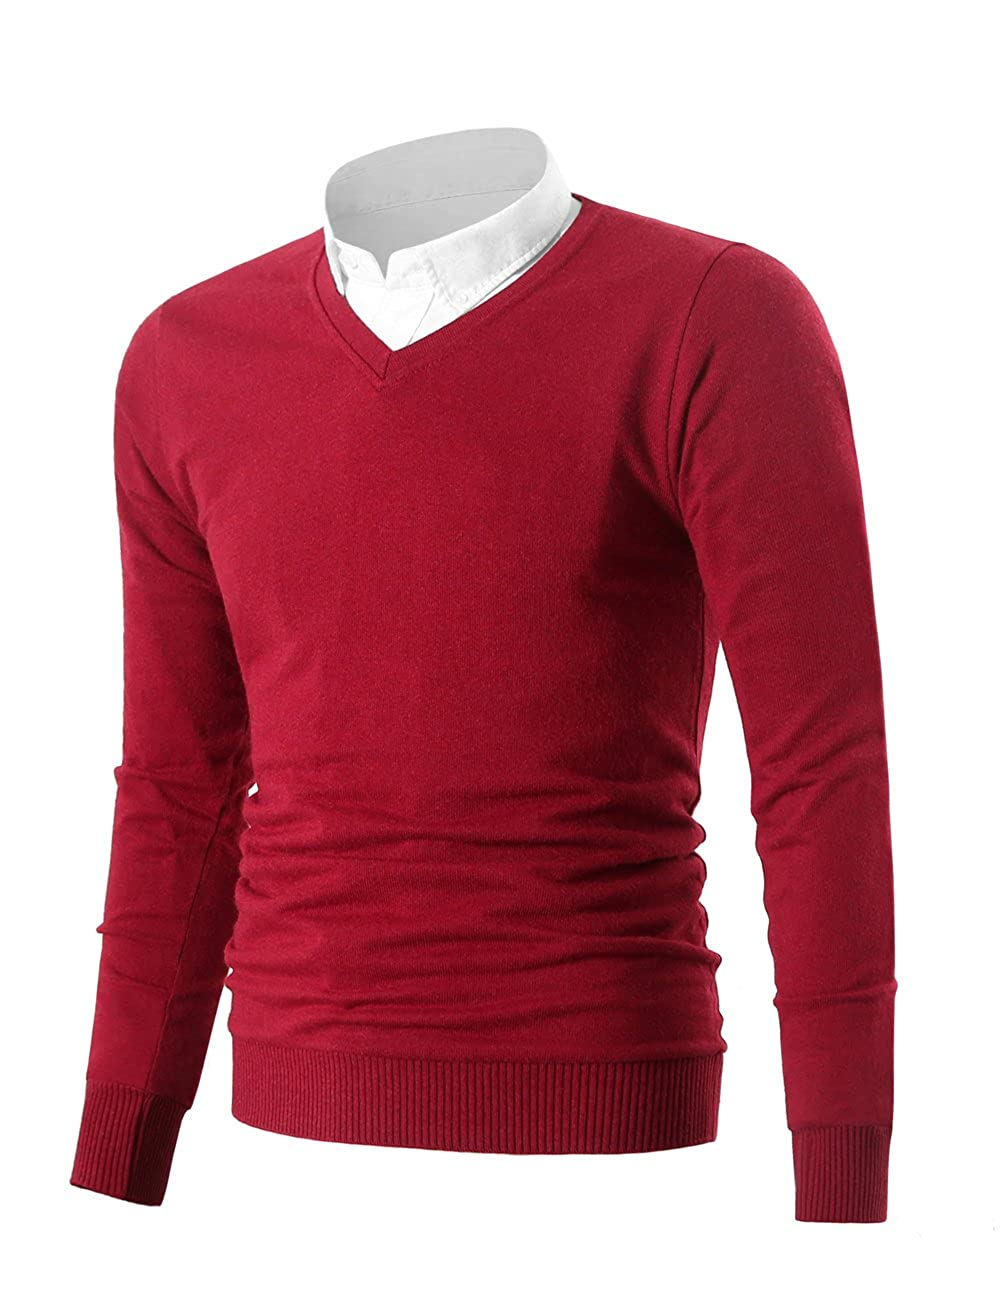 498b5ca86c2 Mesahara Mens Casual Slim Fit Knit V-Neck Pullover Sweater at Amazon Men s  Clothing store